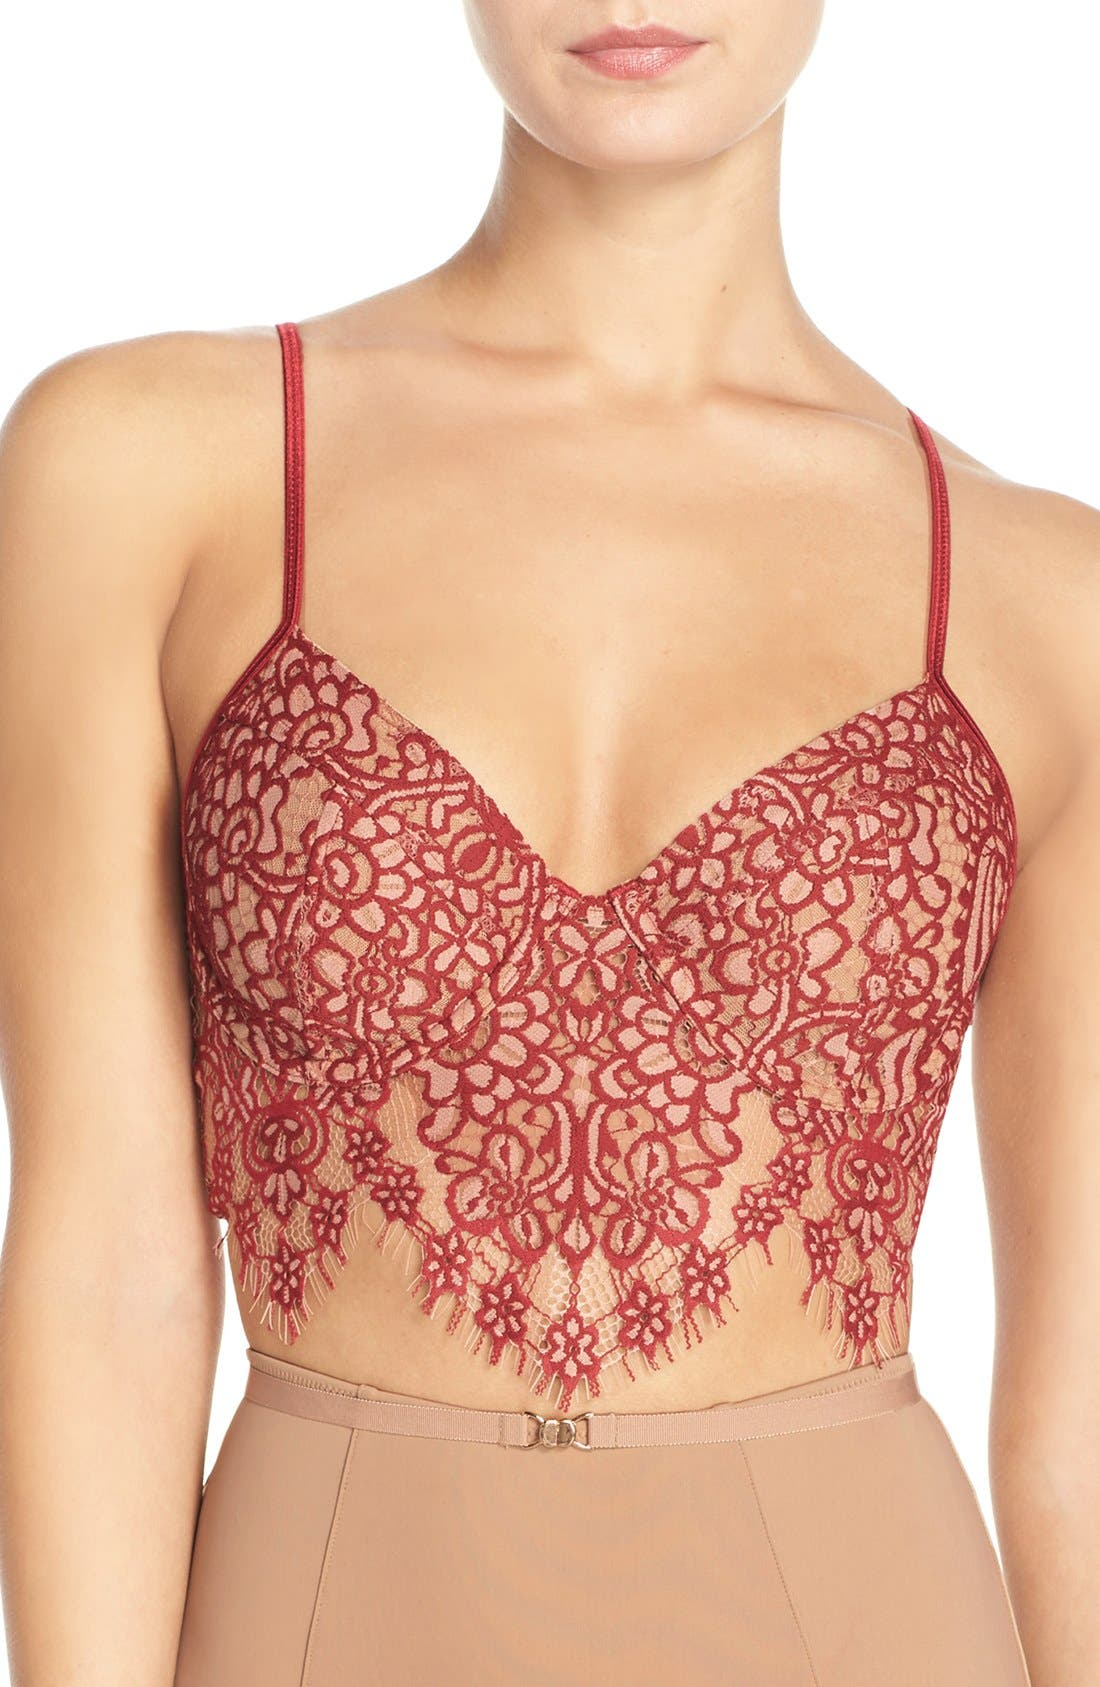 Alternate Image 1 Selected - For Love & Lemons 'Giselle' Underwire Longline Bra